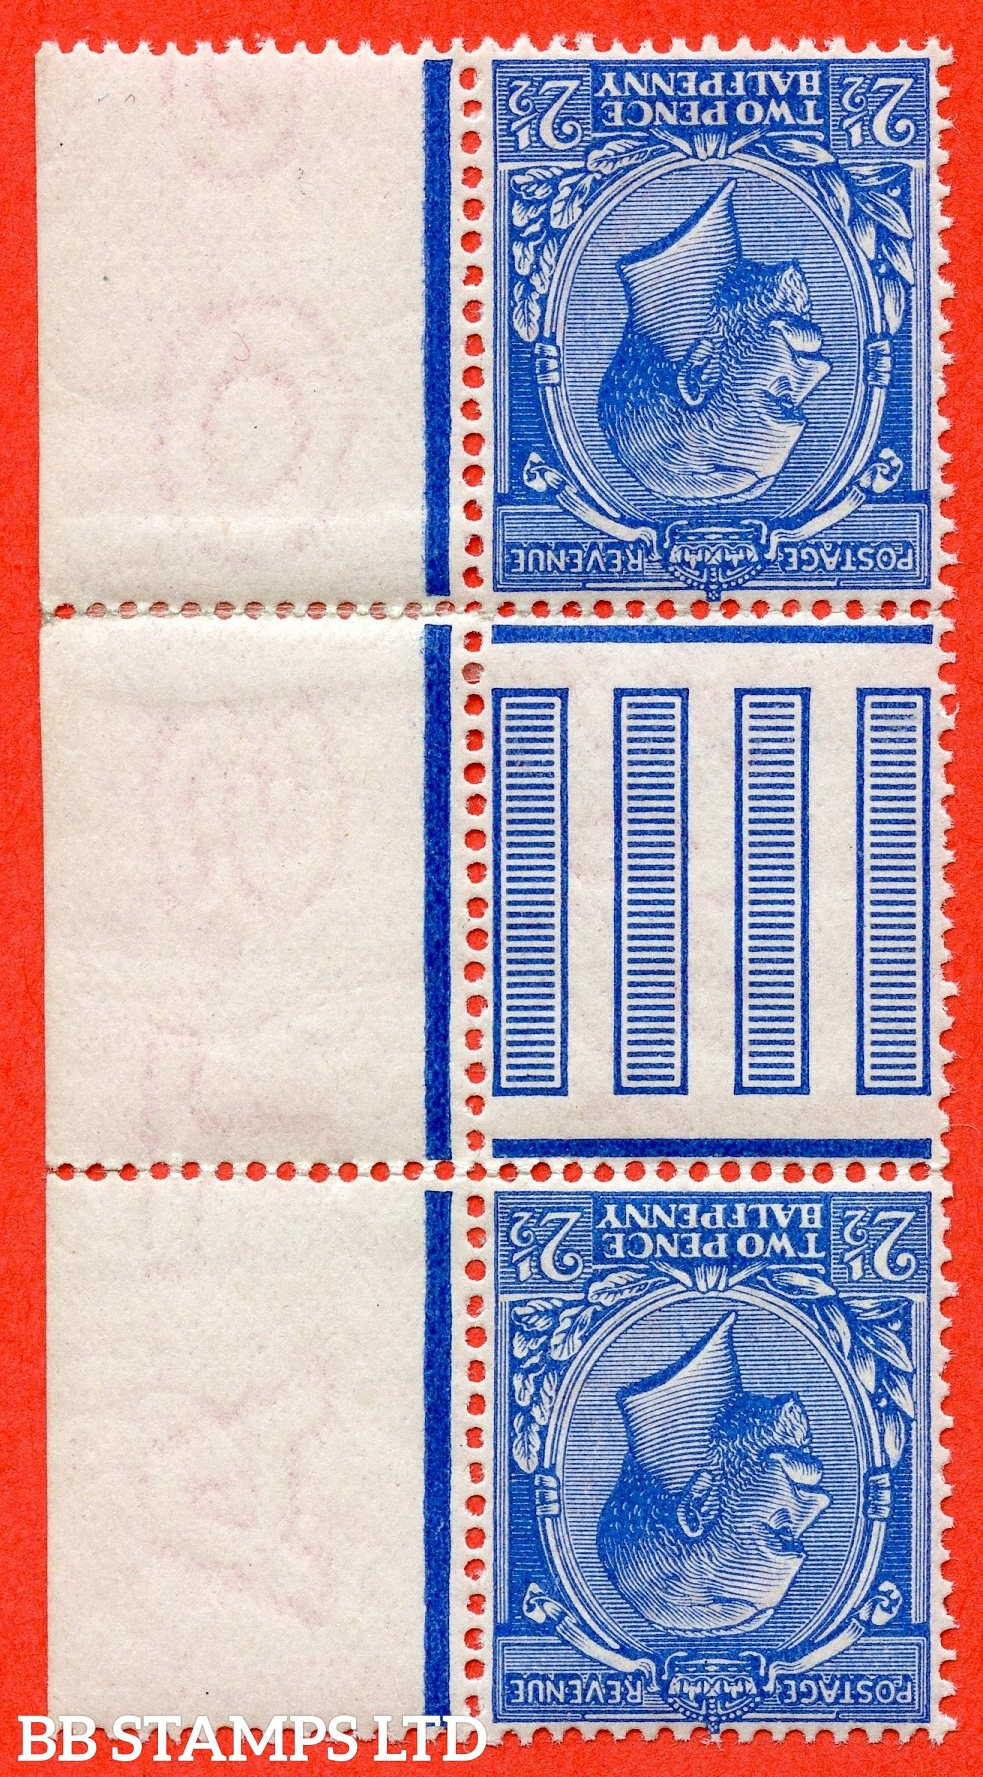 SG. 371 wk variety N21 ( UNLISTED ) d. 2½d deep bright cobalt violet blue. INVERTED & REVERSED WATERMARK. An UNMOUNTED MINT interpanneau gutter pair of this known but unlisted George V shade variety complete with Hendon certificate.